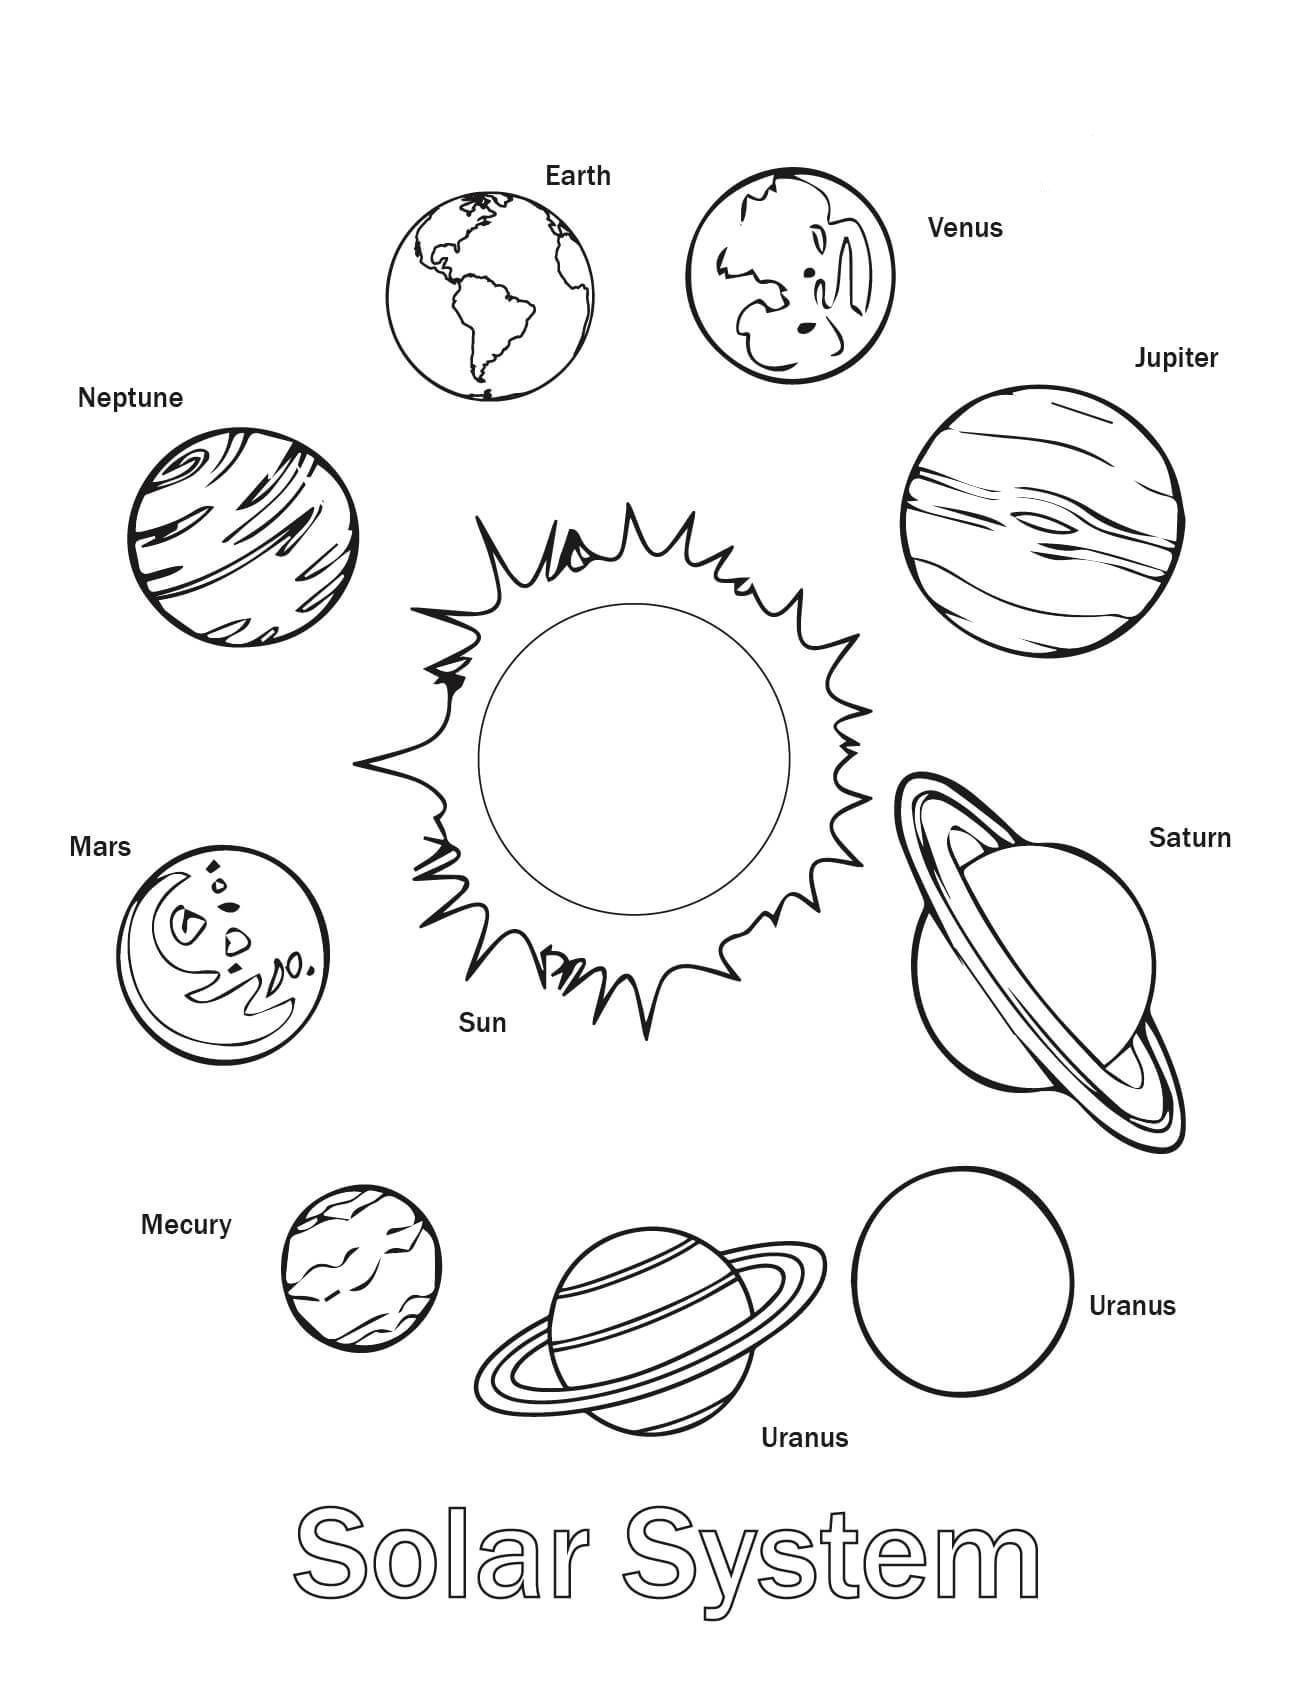 Free Printable Solar System Coloring Pages For Kids | Science - Free Printable Solar System Worksheets